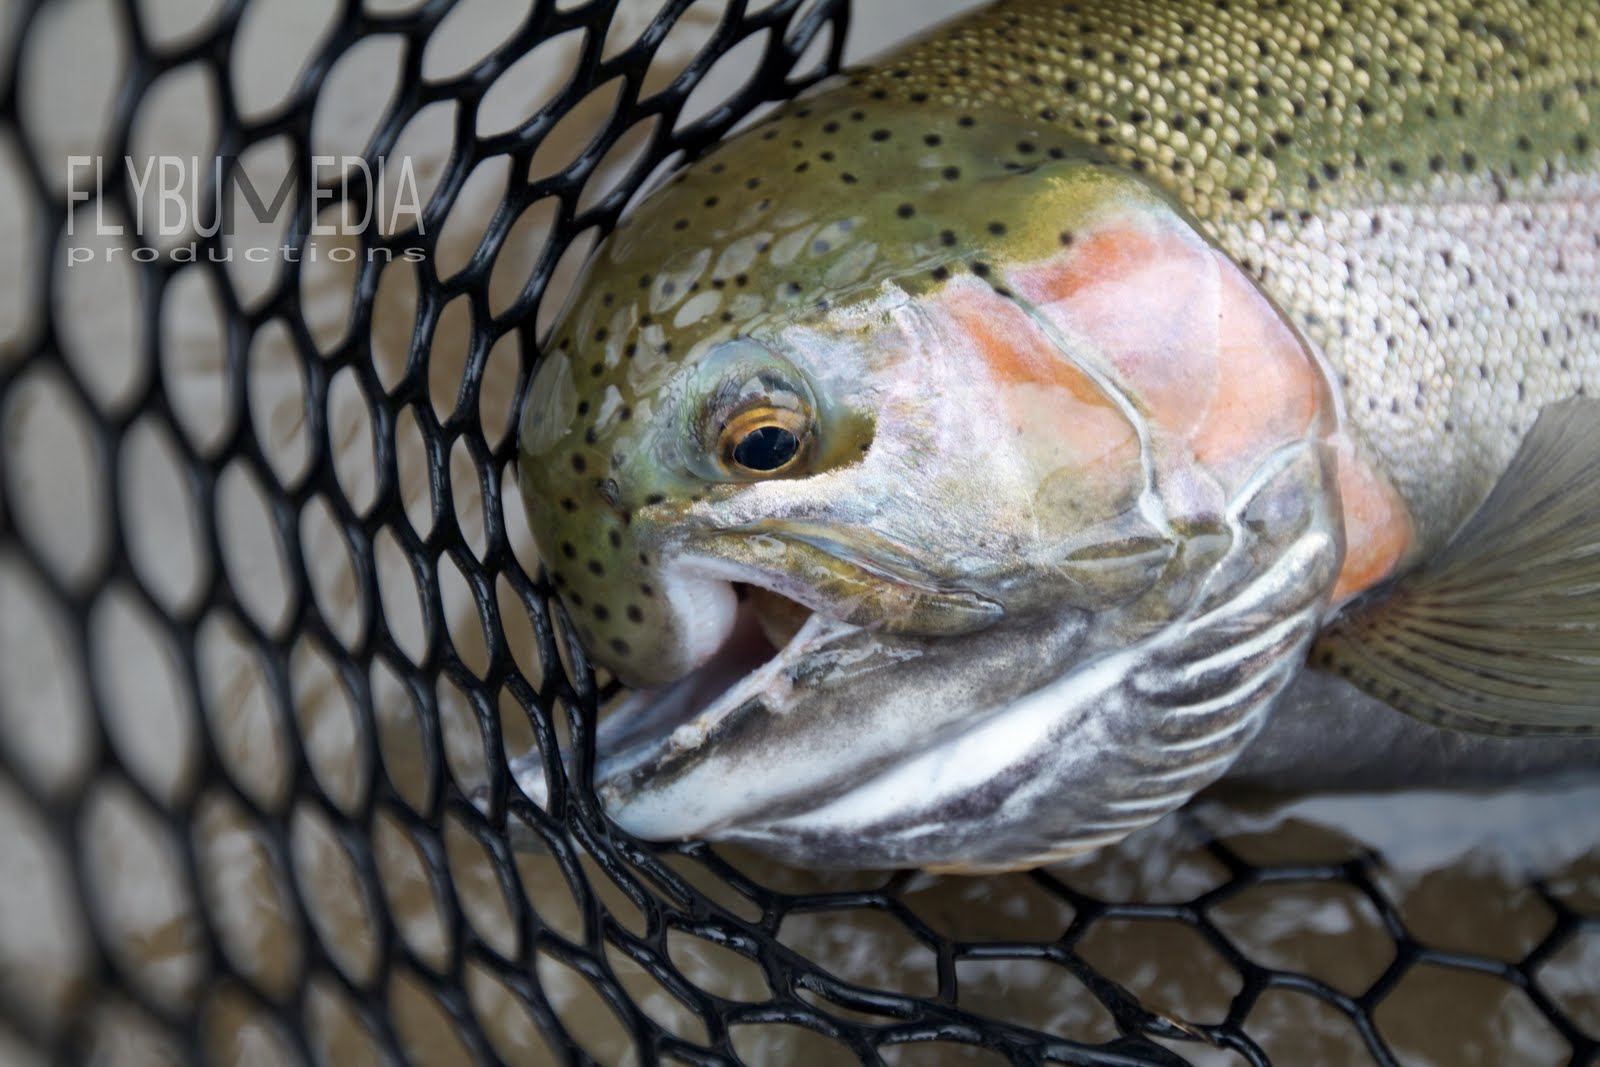 Steelhead alley outfitters lake erie fly fishing guide for Lake erie fish species